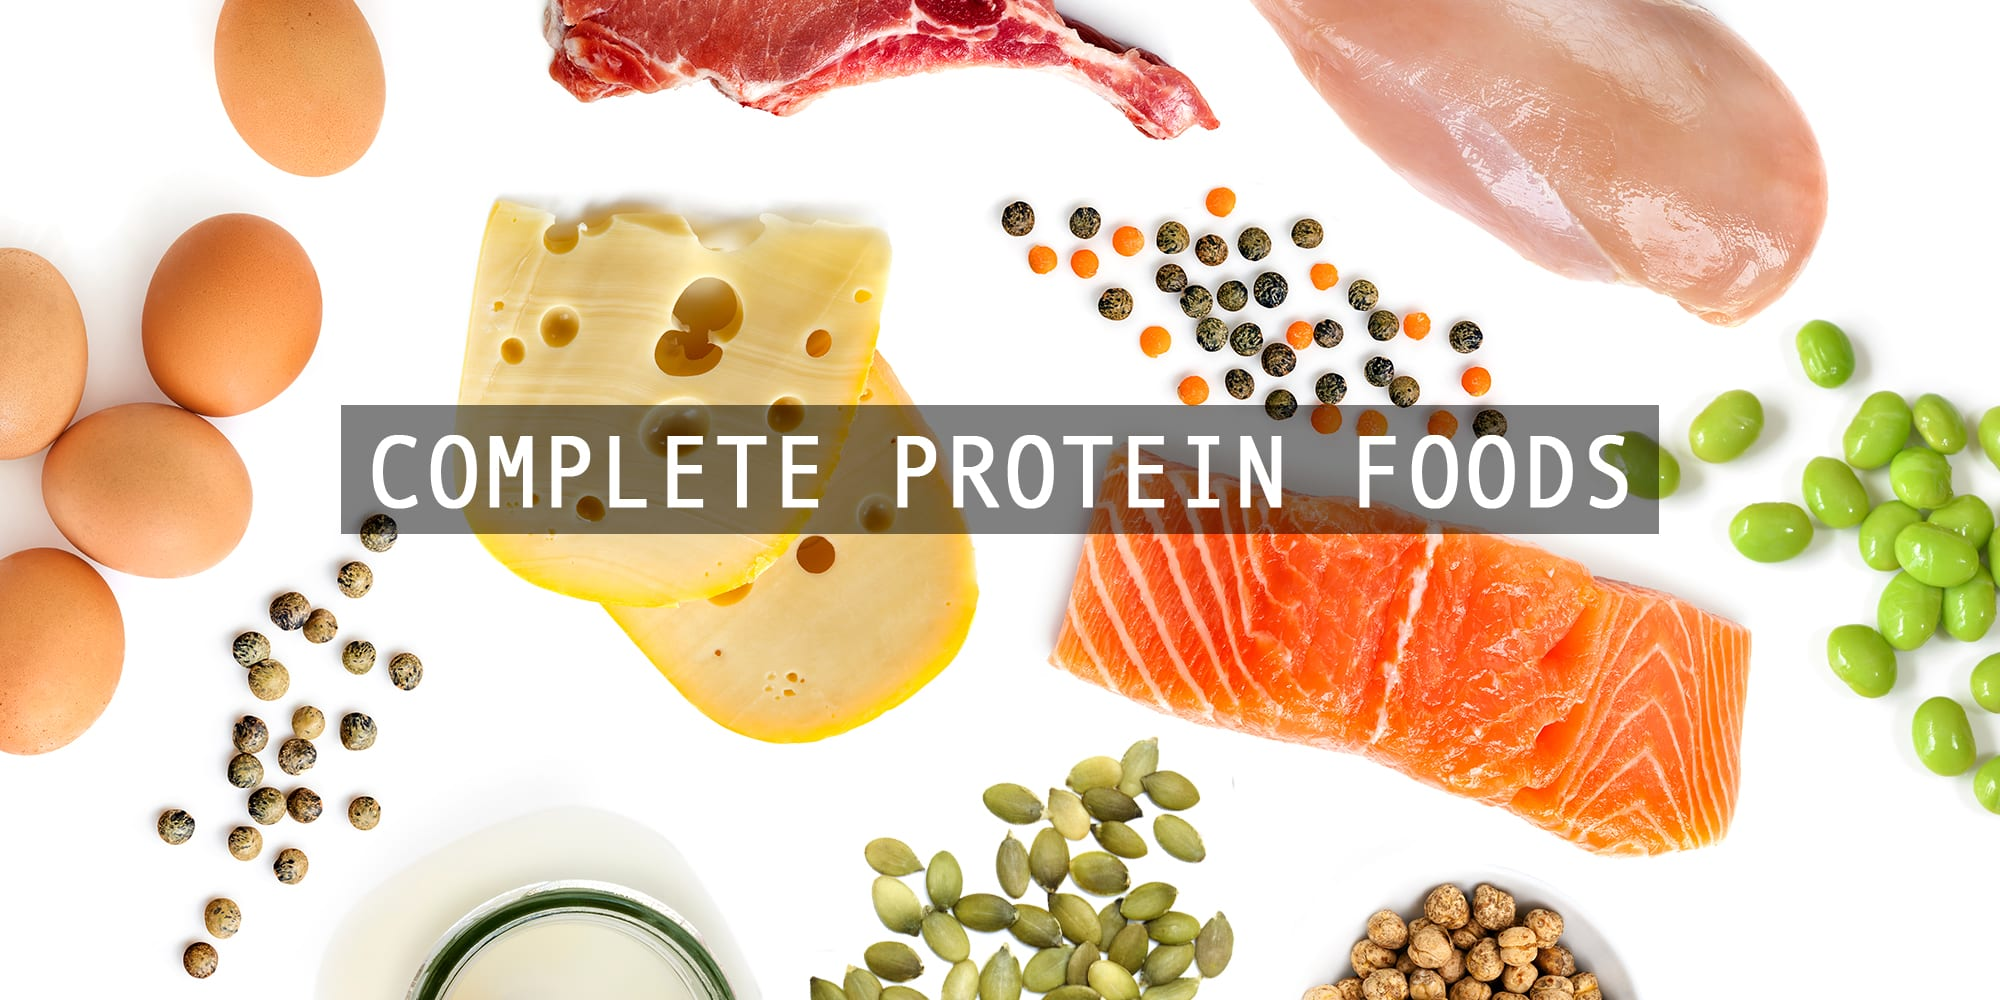 Complete Protein Foods for Every Diet